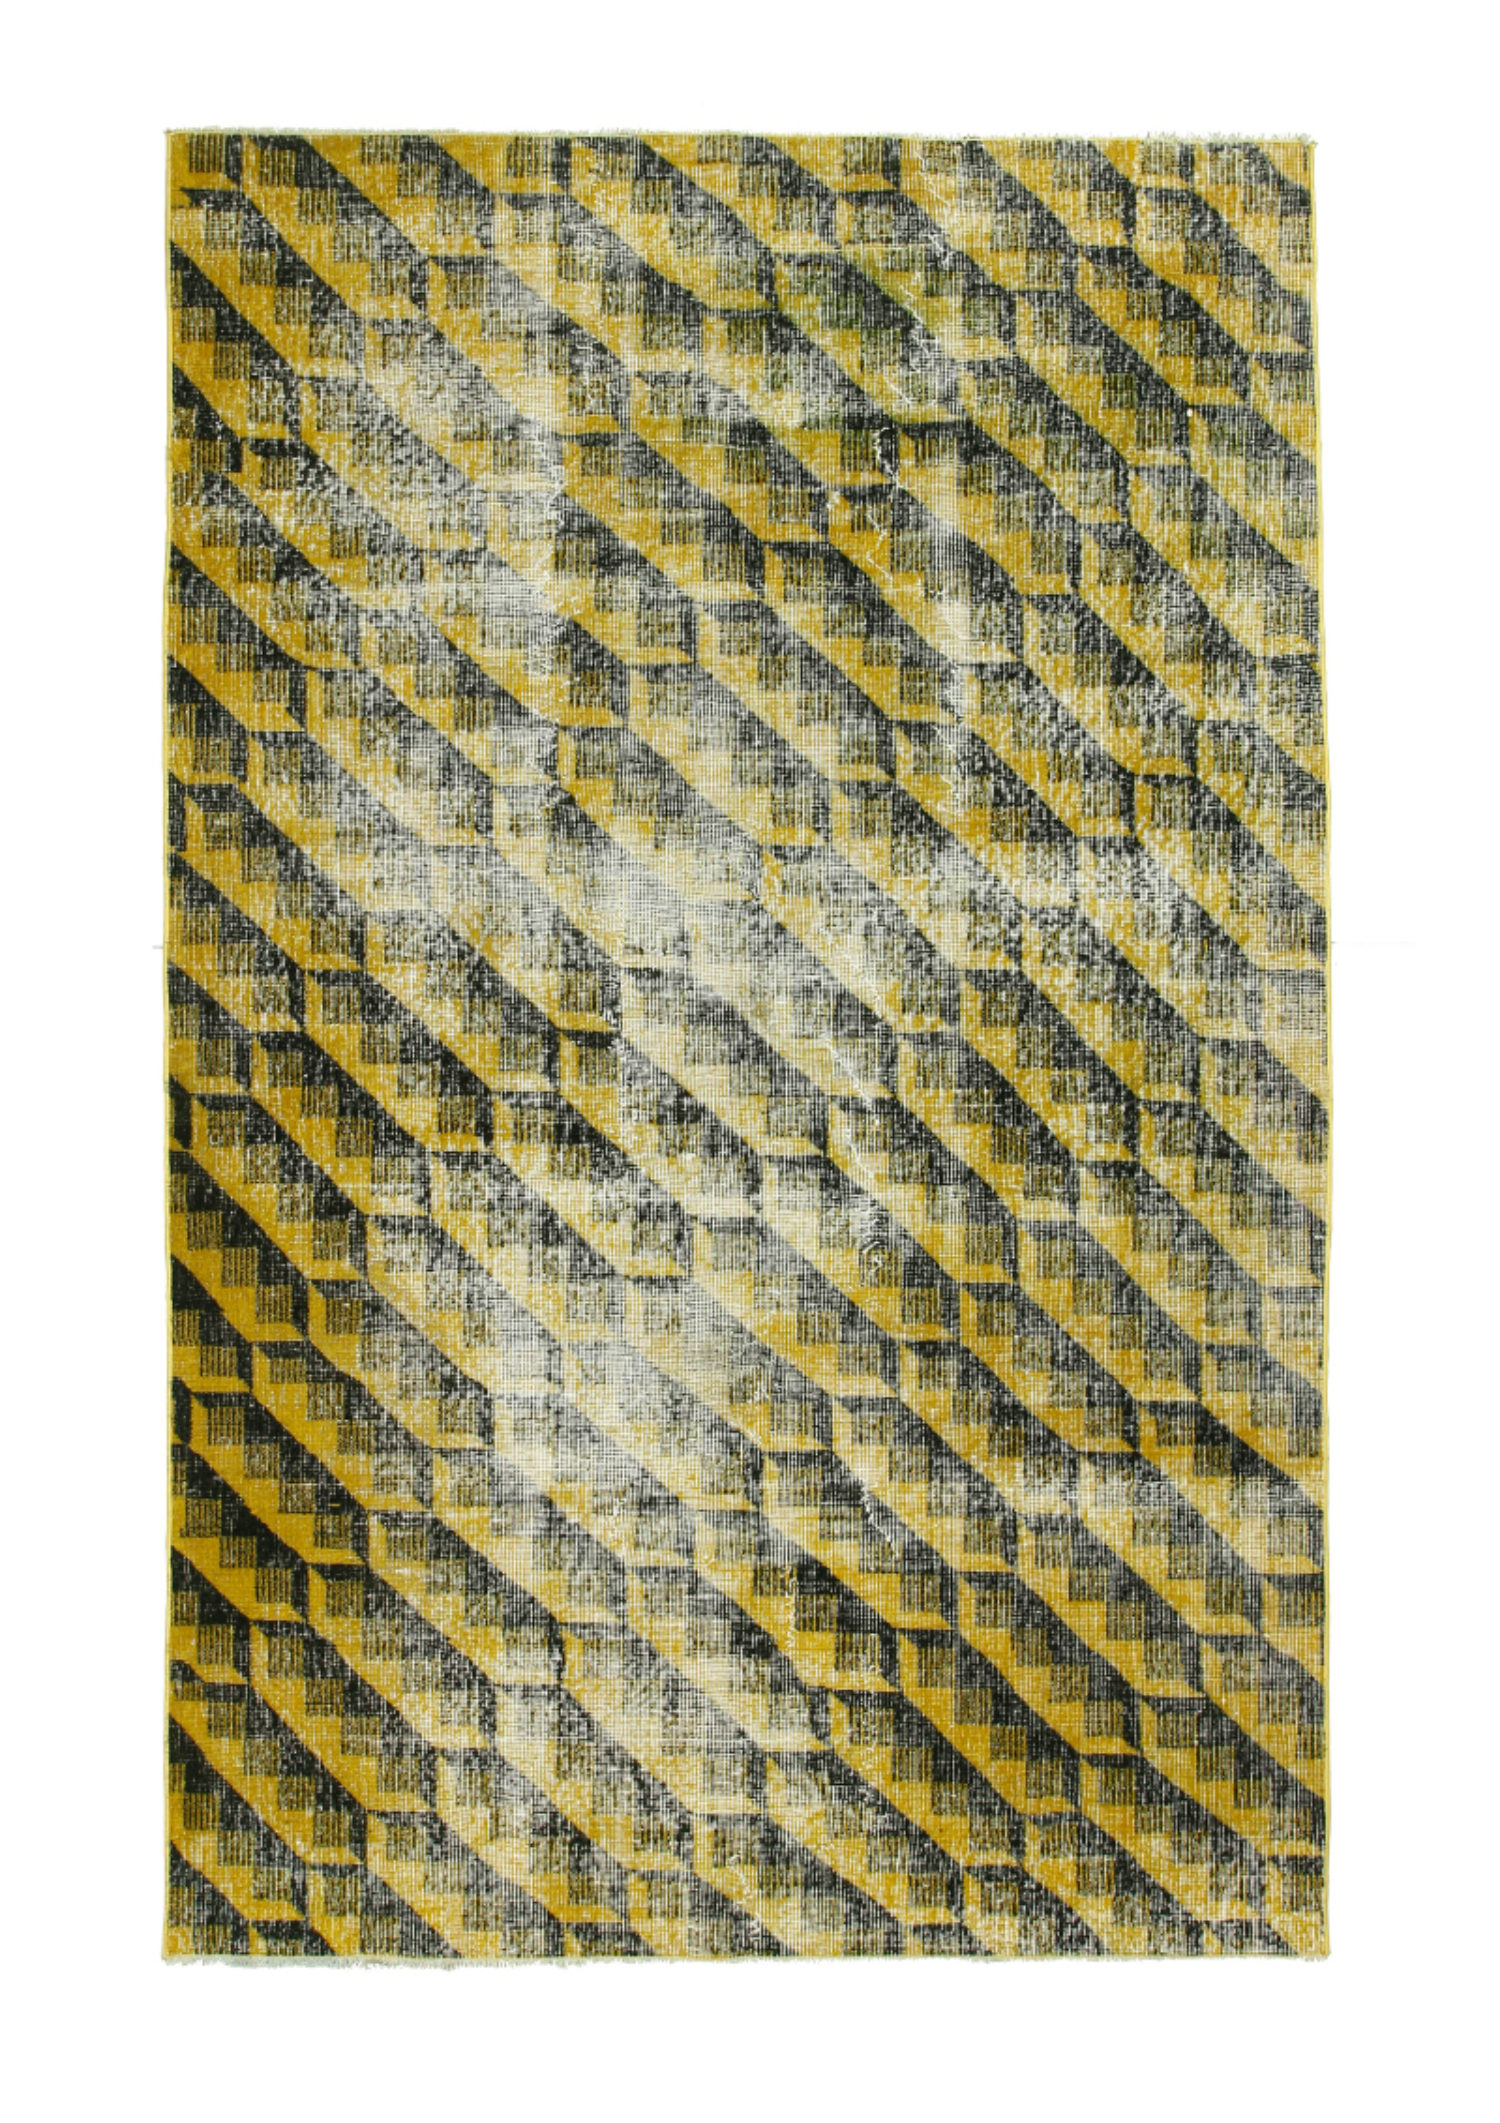 Vintage Over Dyed Patterned Yellow - 5264